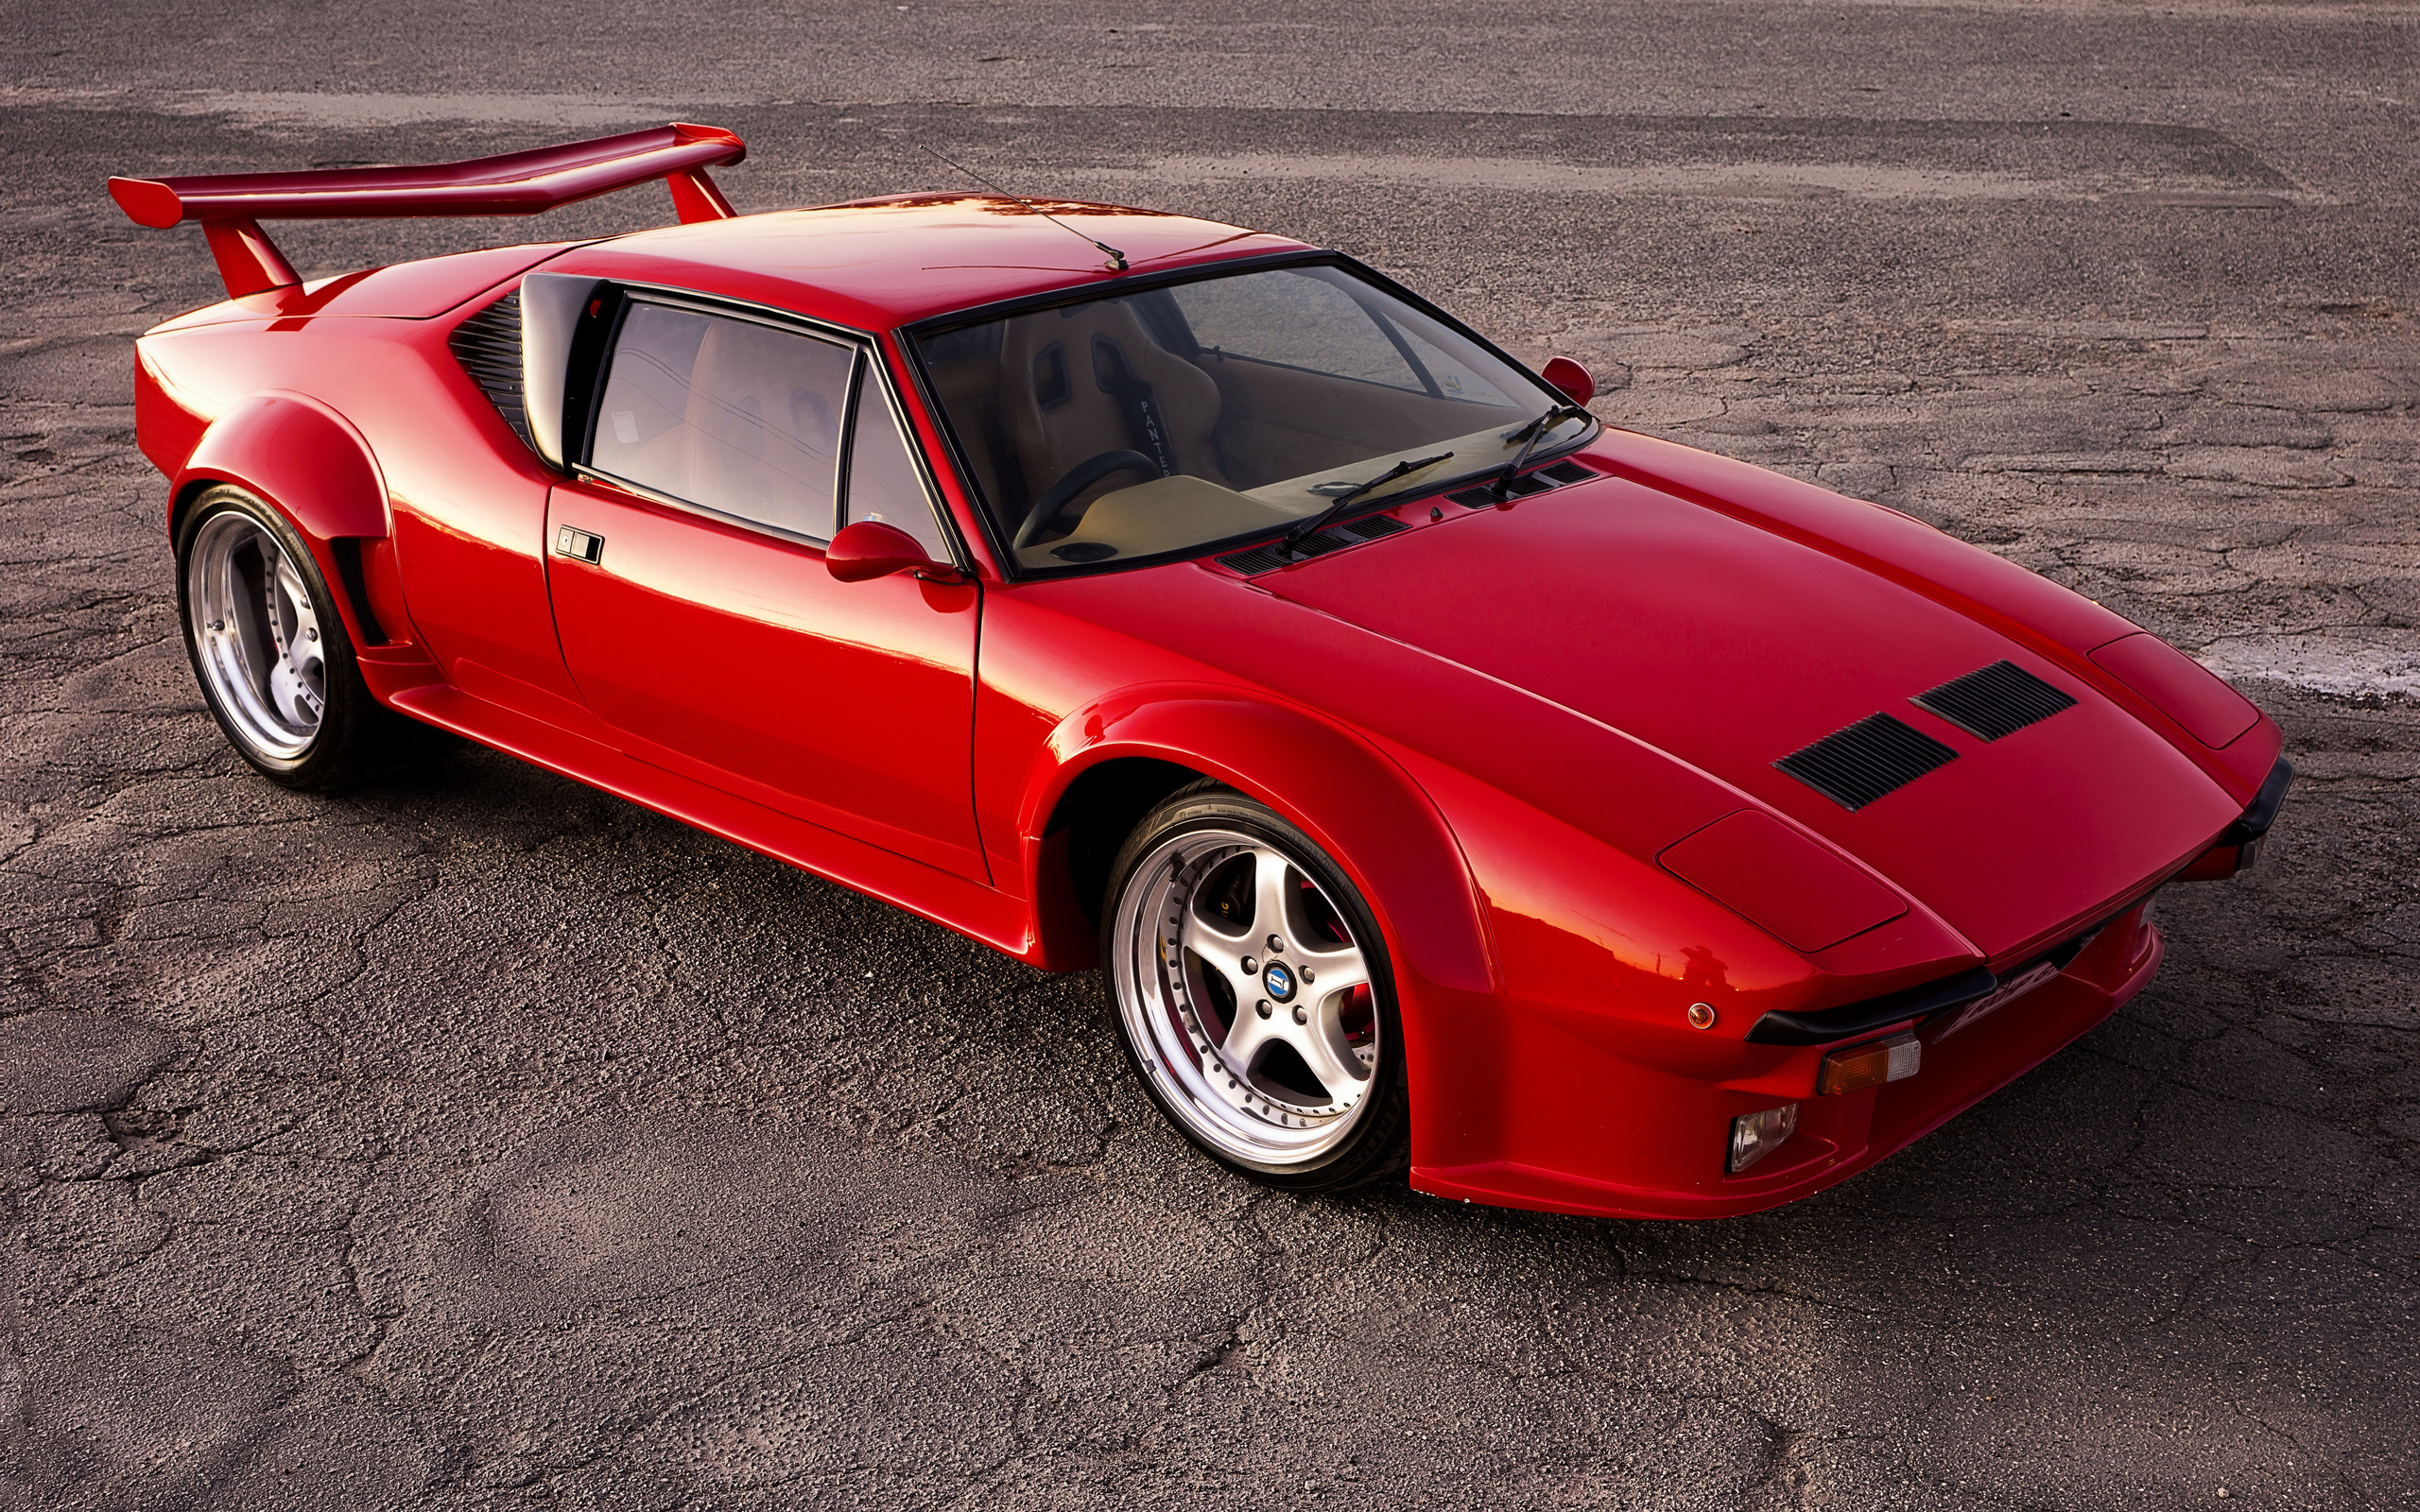 авто, car, red, de tomaso pantera, суперкар